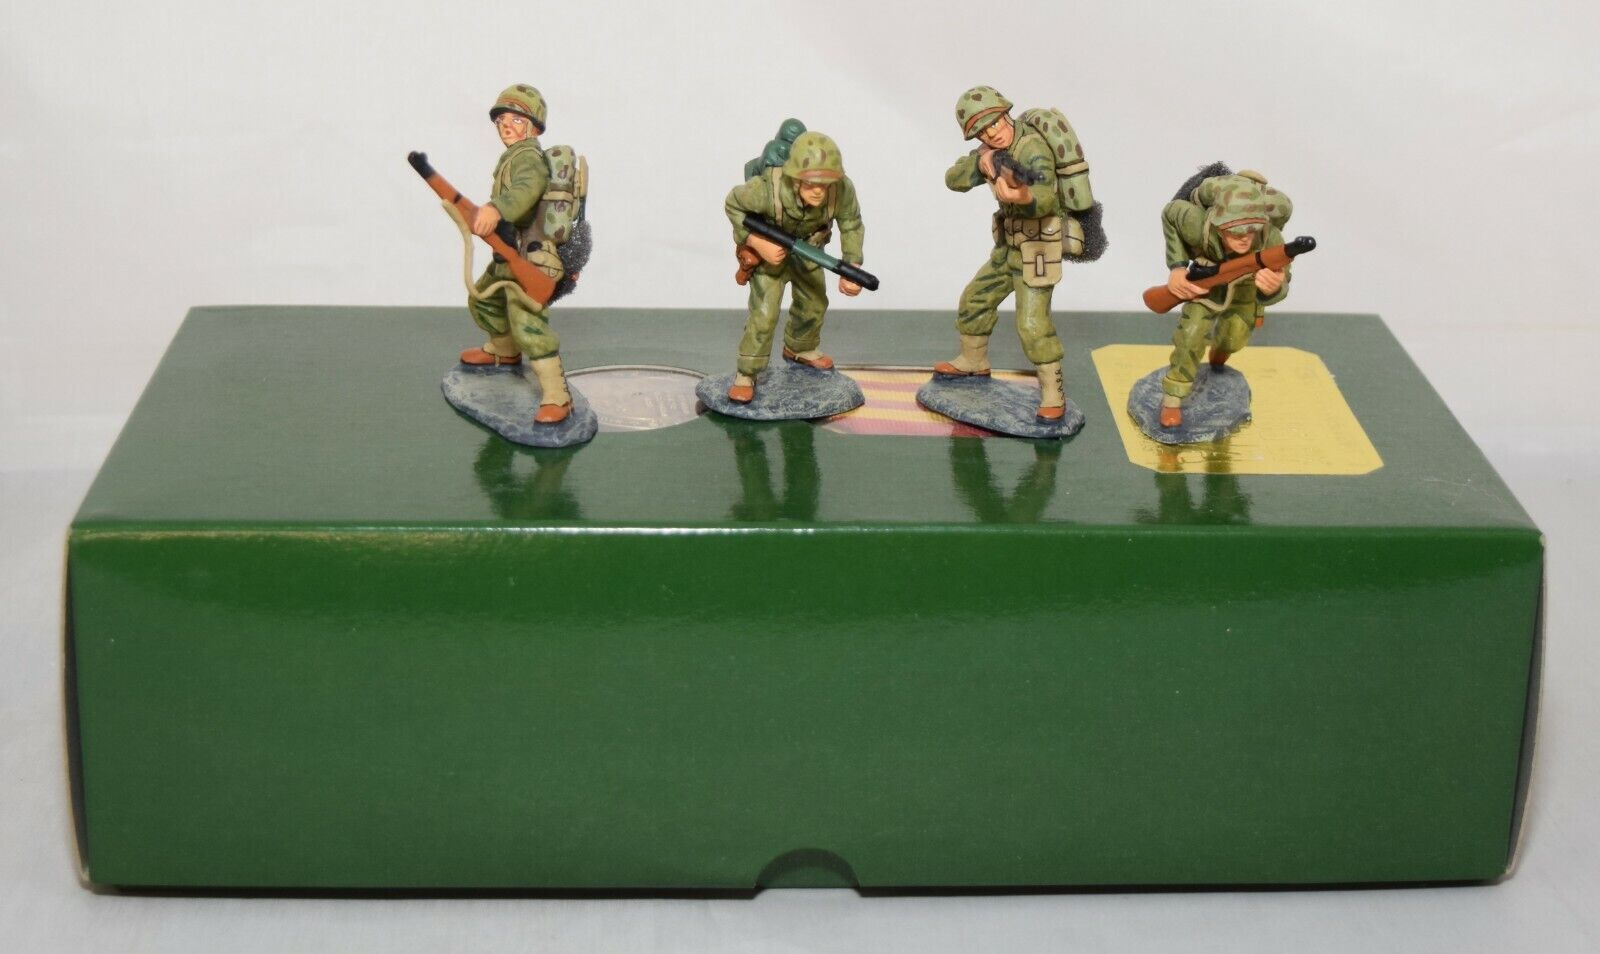 KING AND COUNTRY COUNTRY IWJ002 IWJ02 FIRE SUPPORT - IWO JIMA 1 30 SCALE BOXED